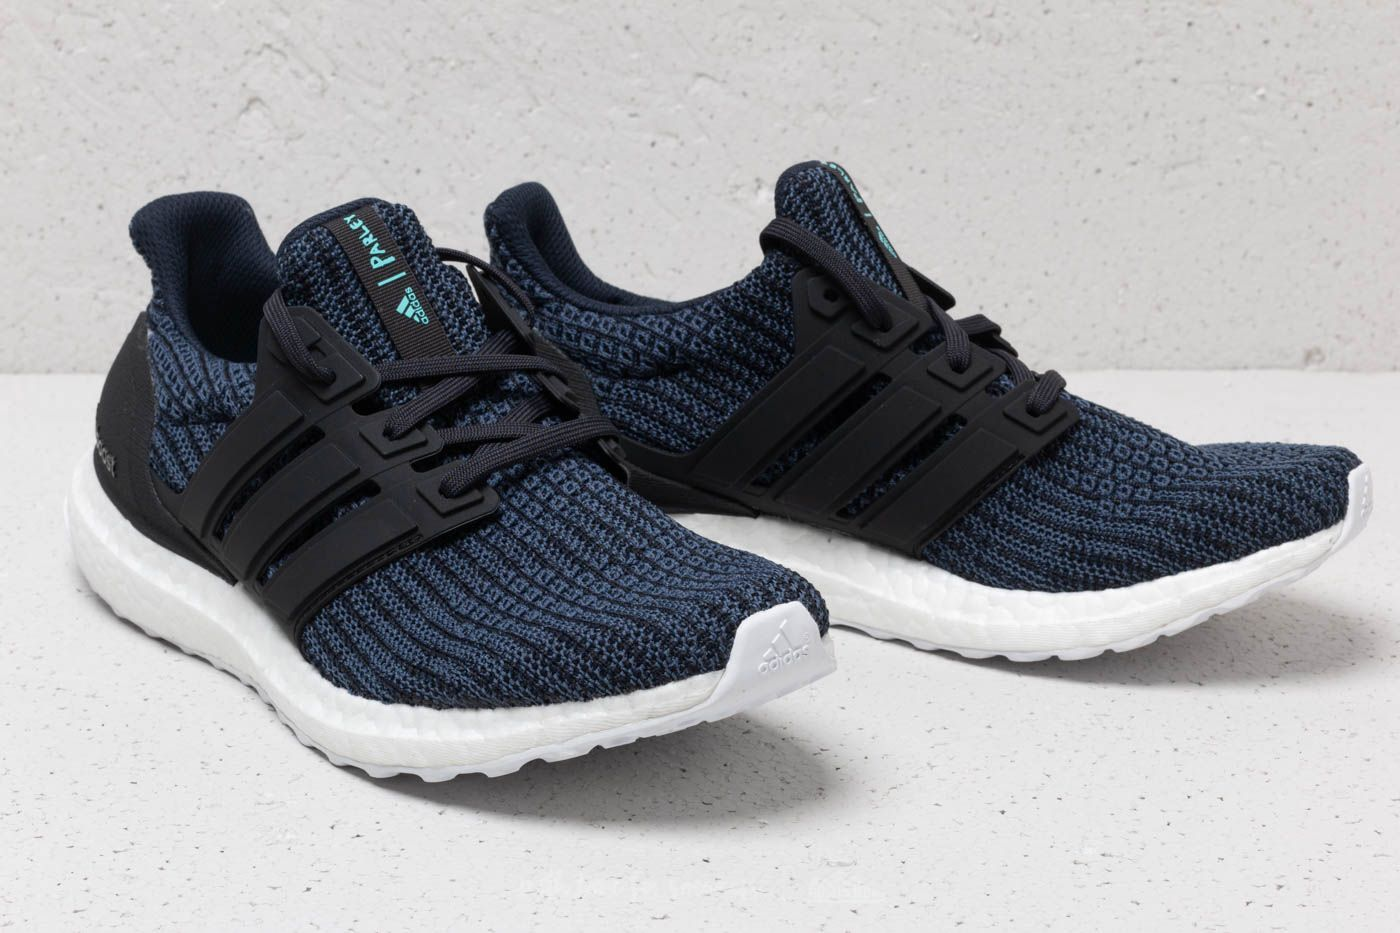 separation shoes d44dc a95a5 adidas UltraBOOST W Parley   Legend Ink  Carbon  Blue Spirit    224